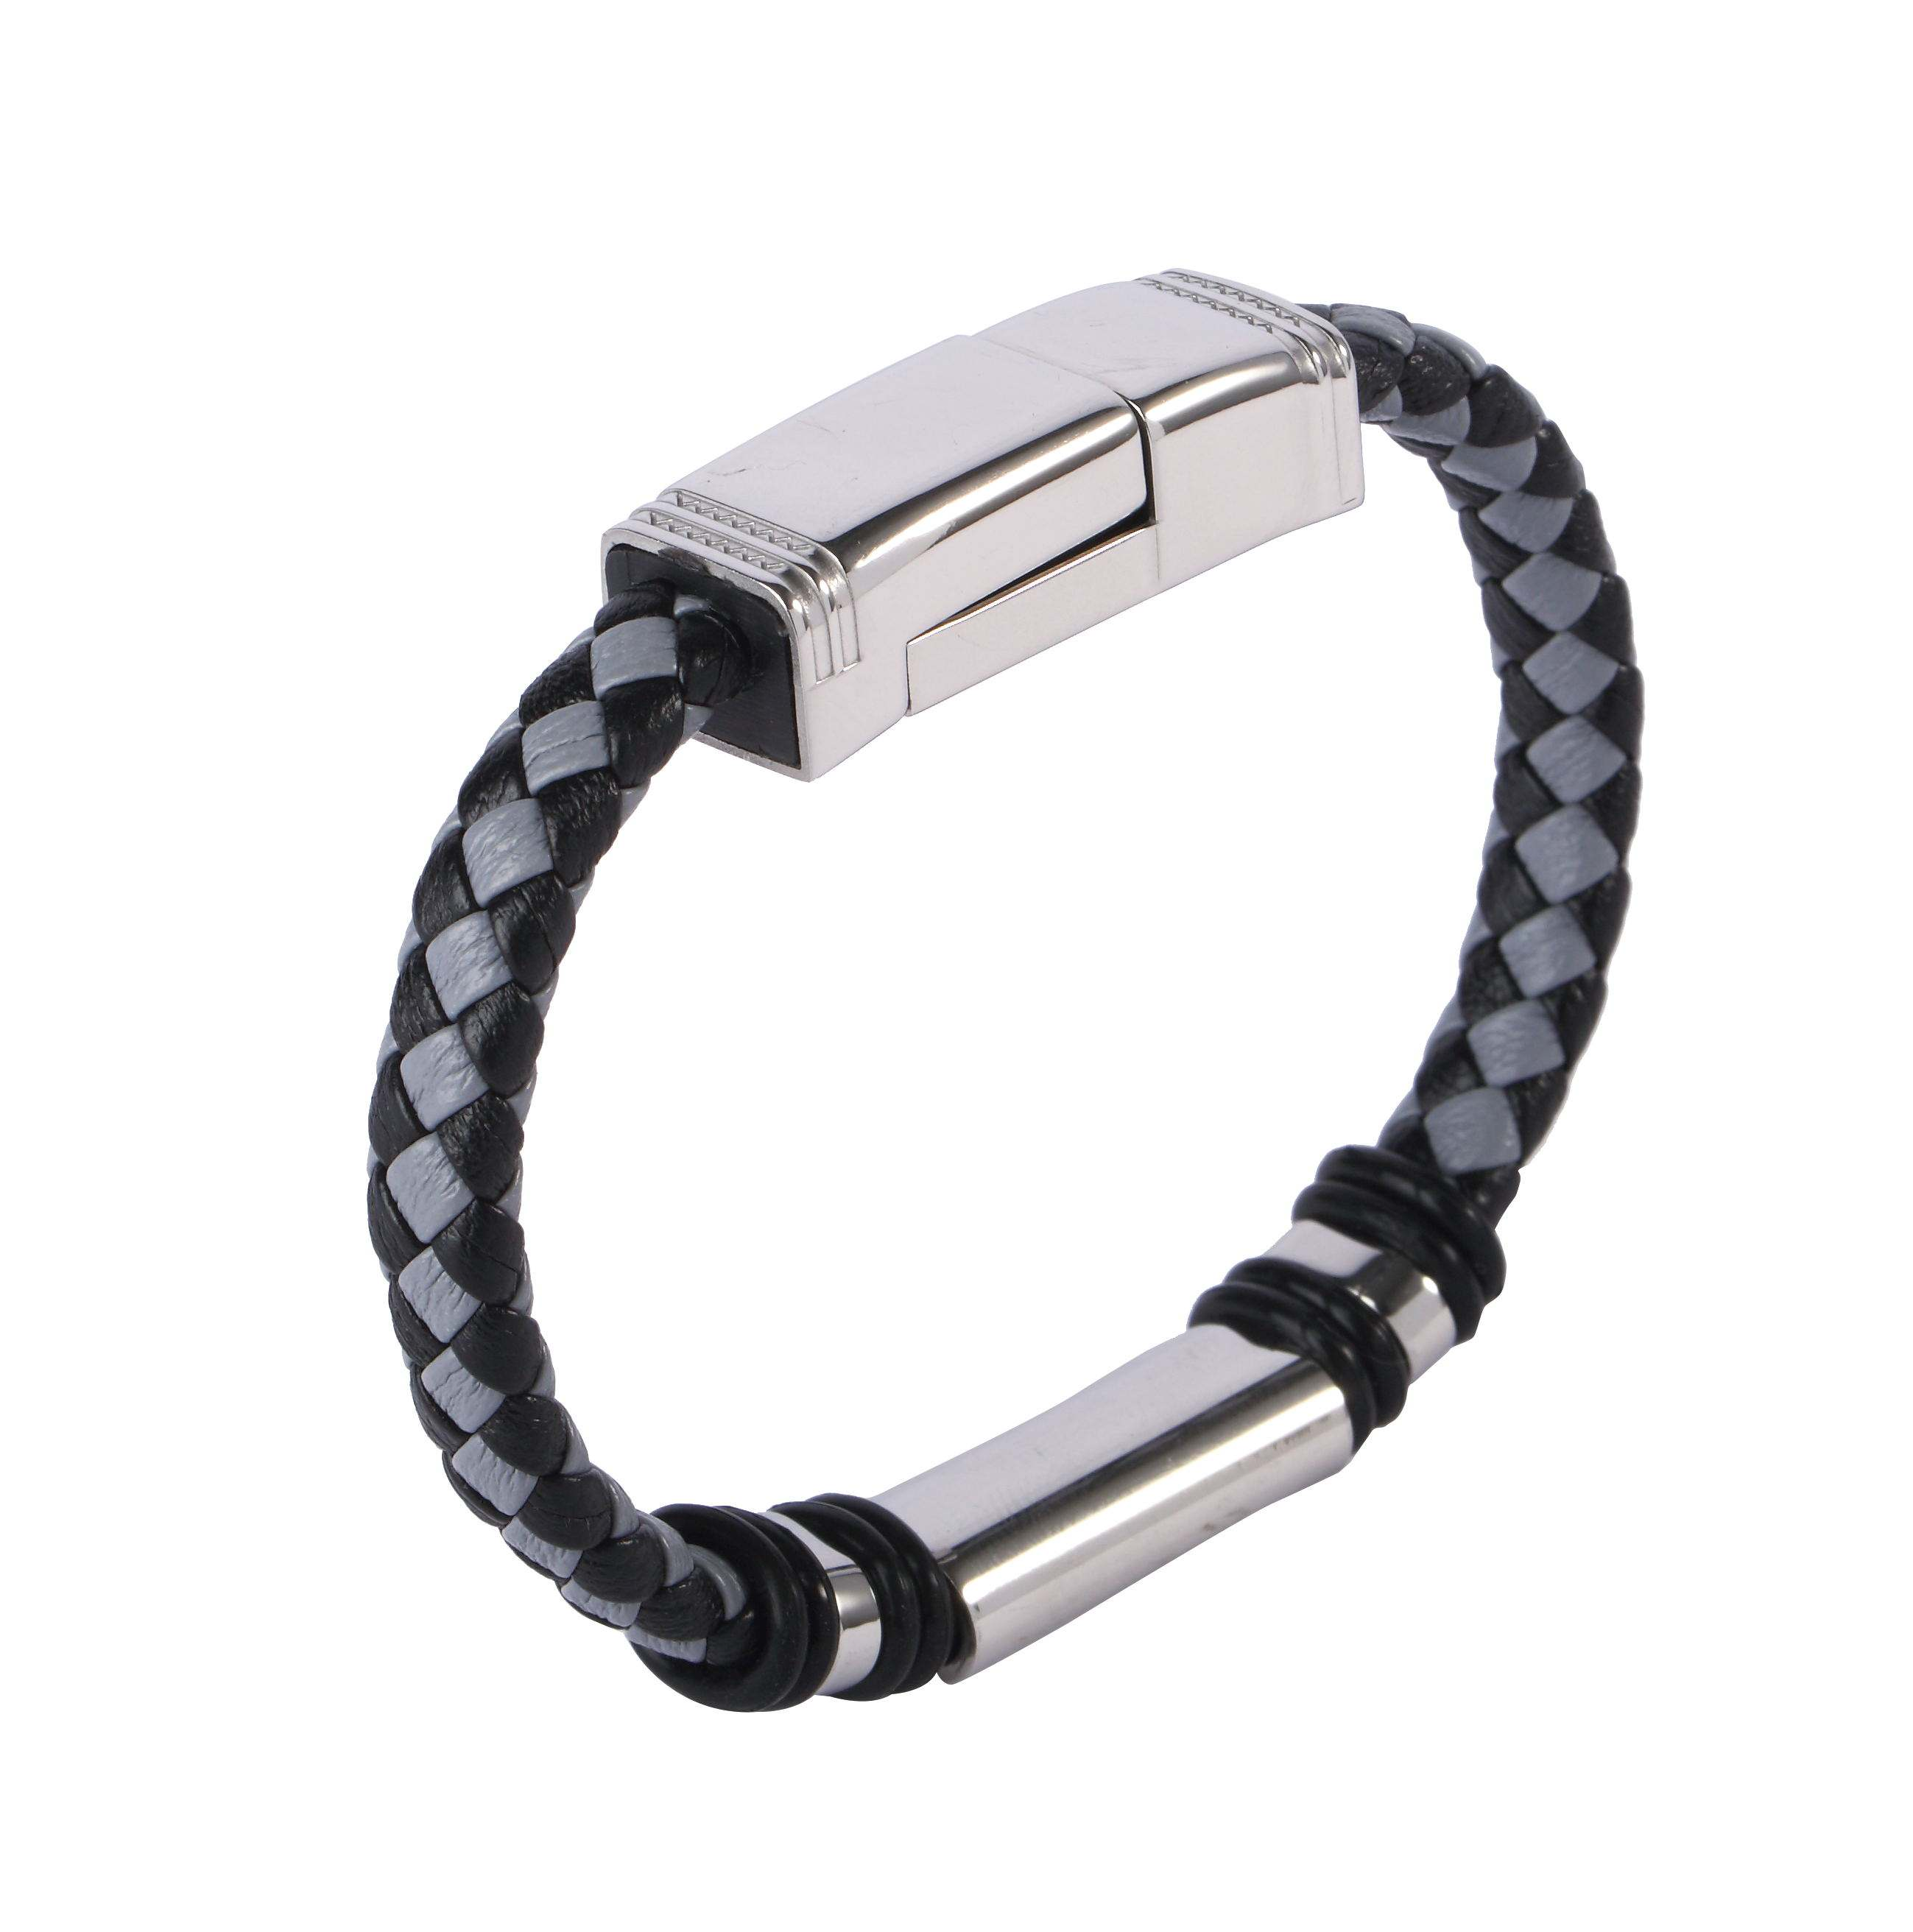 Unique Bracelet Trendy Jewelry USB Charger Data Phone Cable New Stainless Steel Bracelet For Men